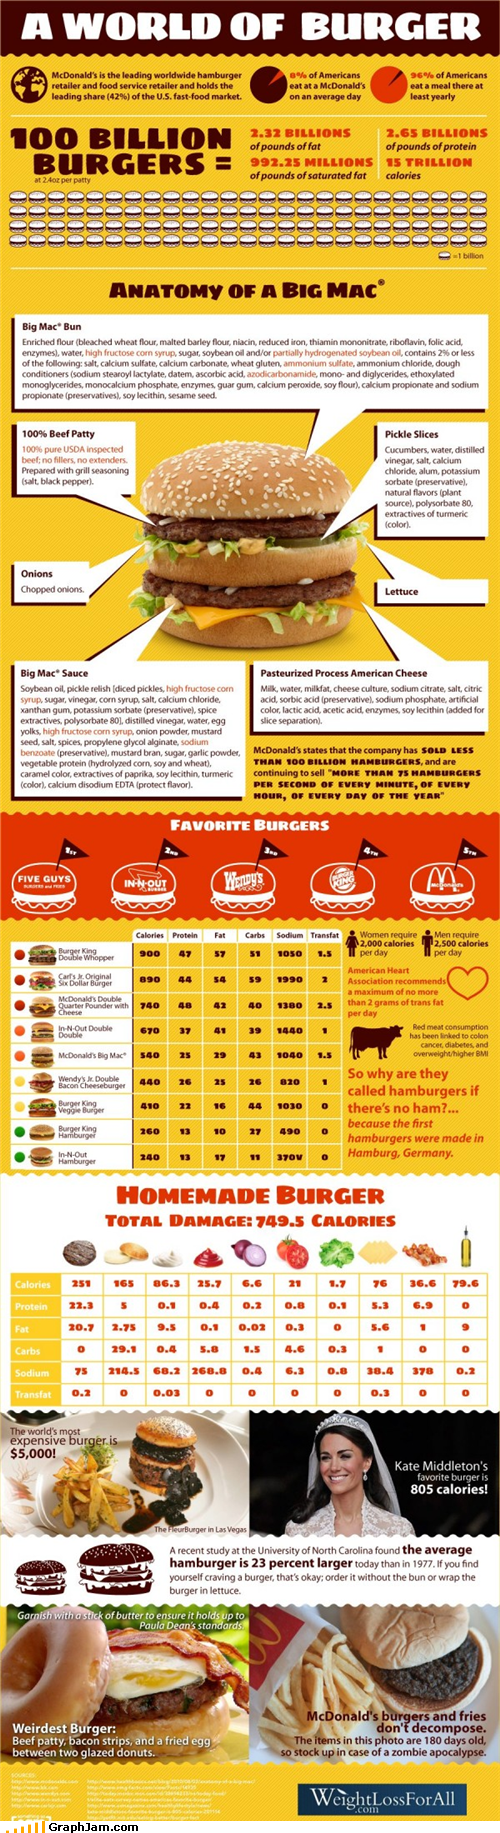 burgers calories gross hamburgers infographic ingredients